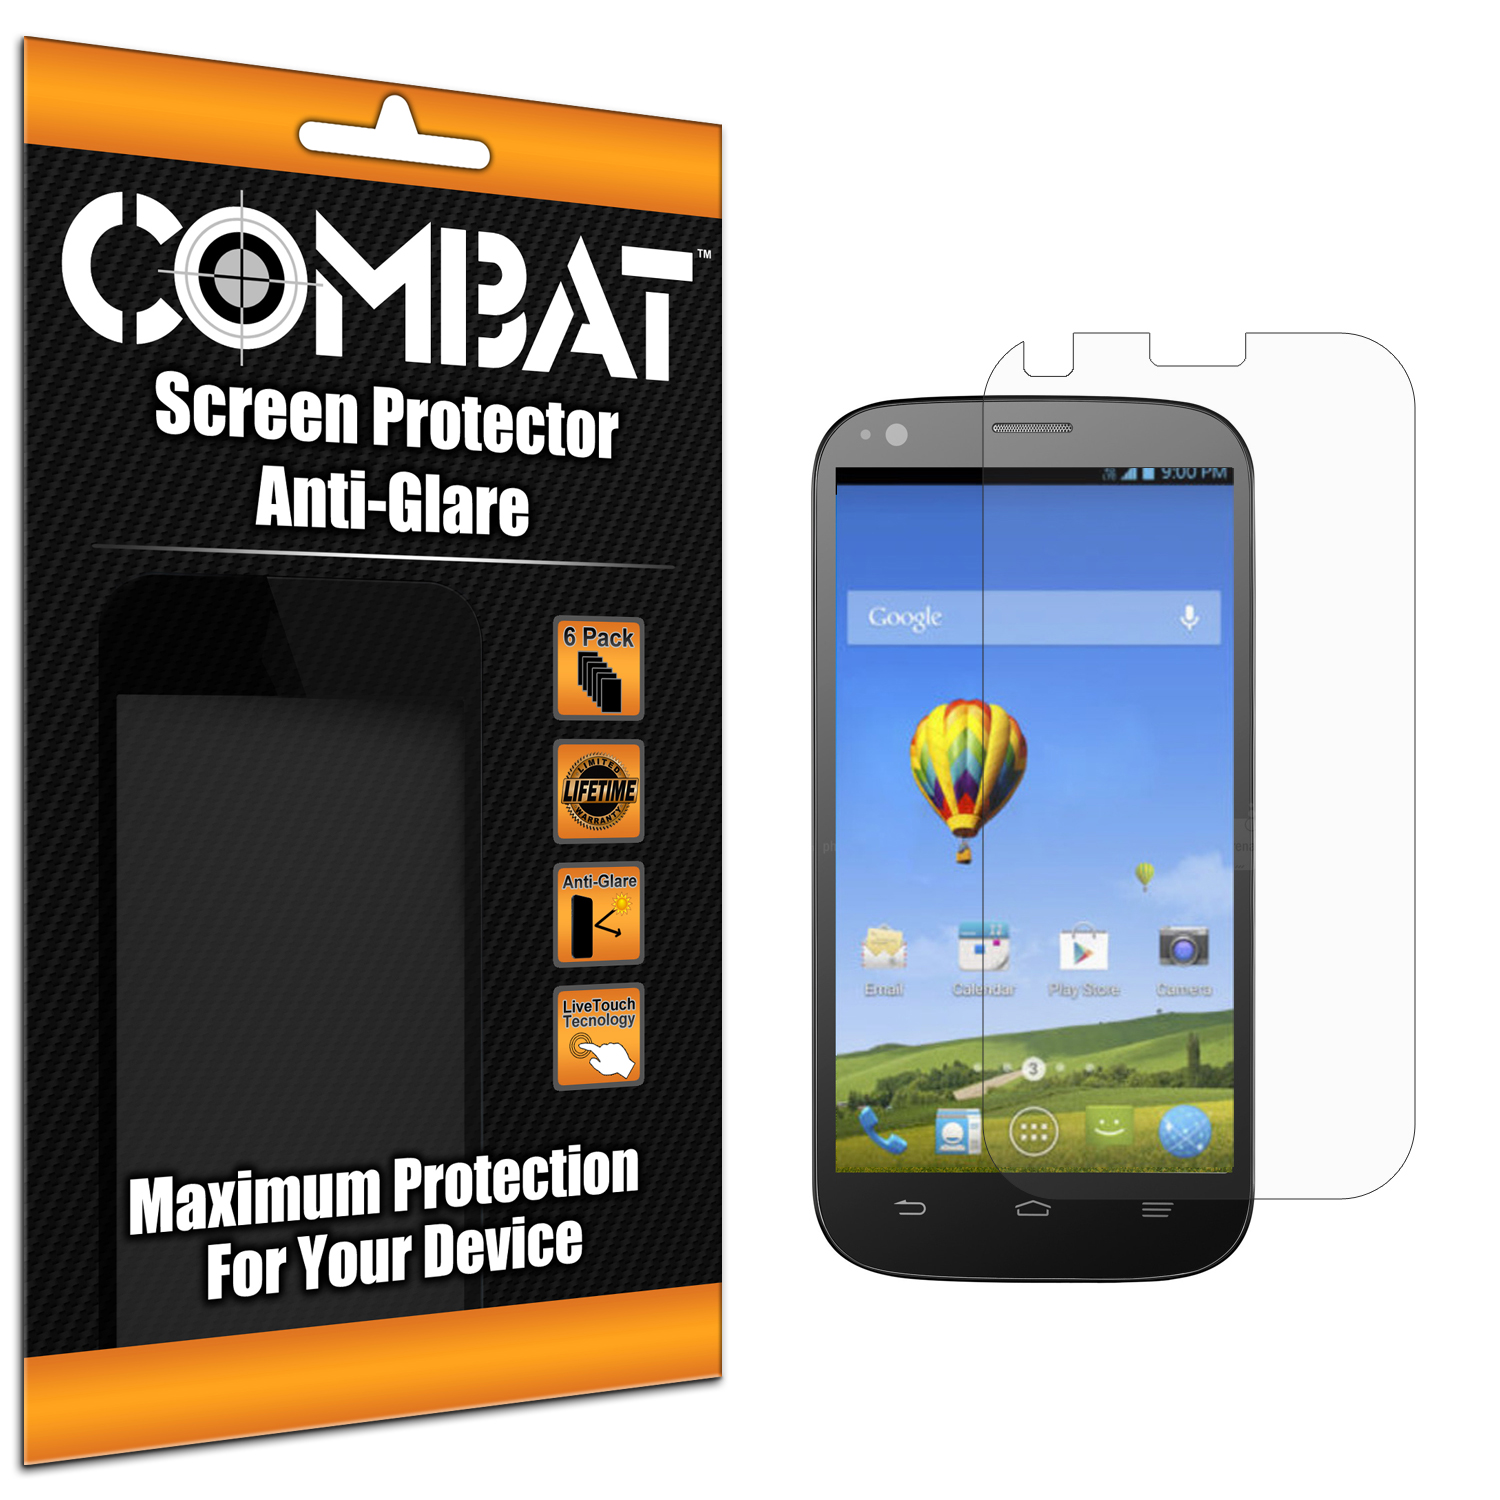 ZTE Grand S Pro N9835 Combat 6 Pack Anti-Glare Matte Screen Protector